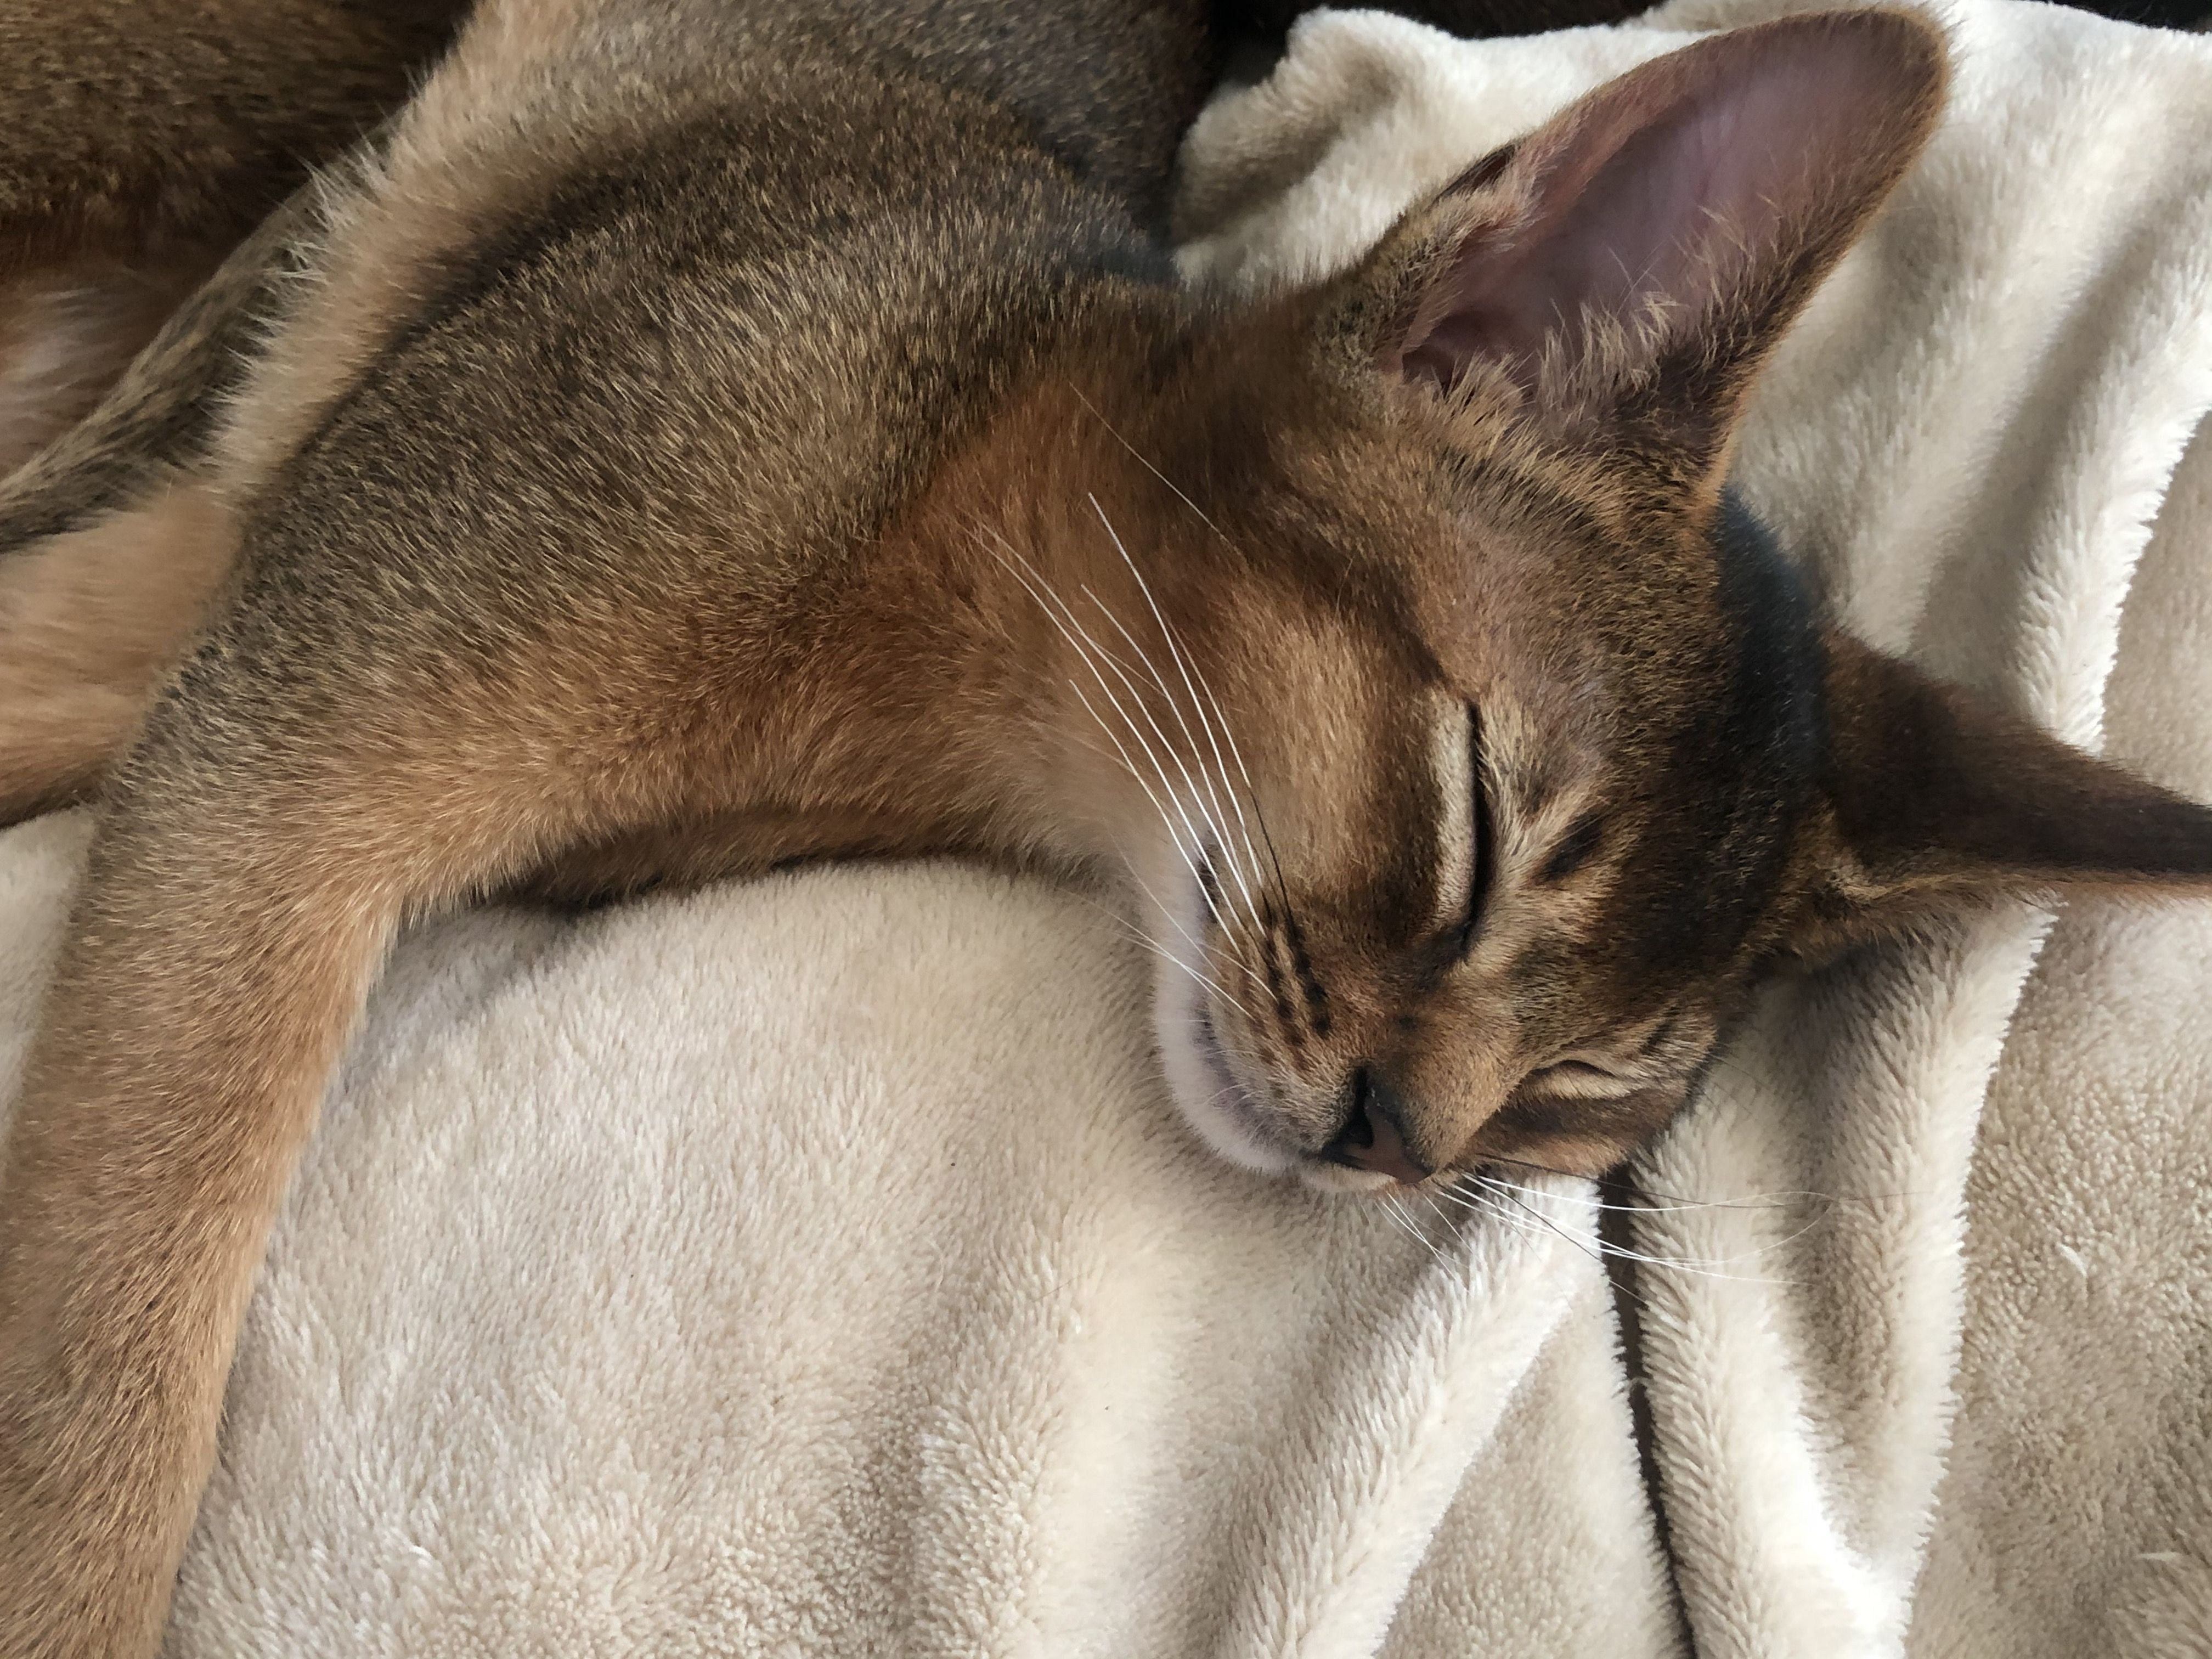 Pin By Cindy Kinsey On My Abyssinian Life In 2020 Abyssinian Cats Cat Sleeping Cats And Kittens